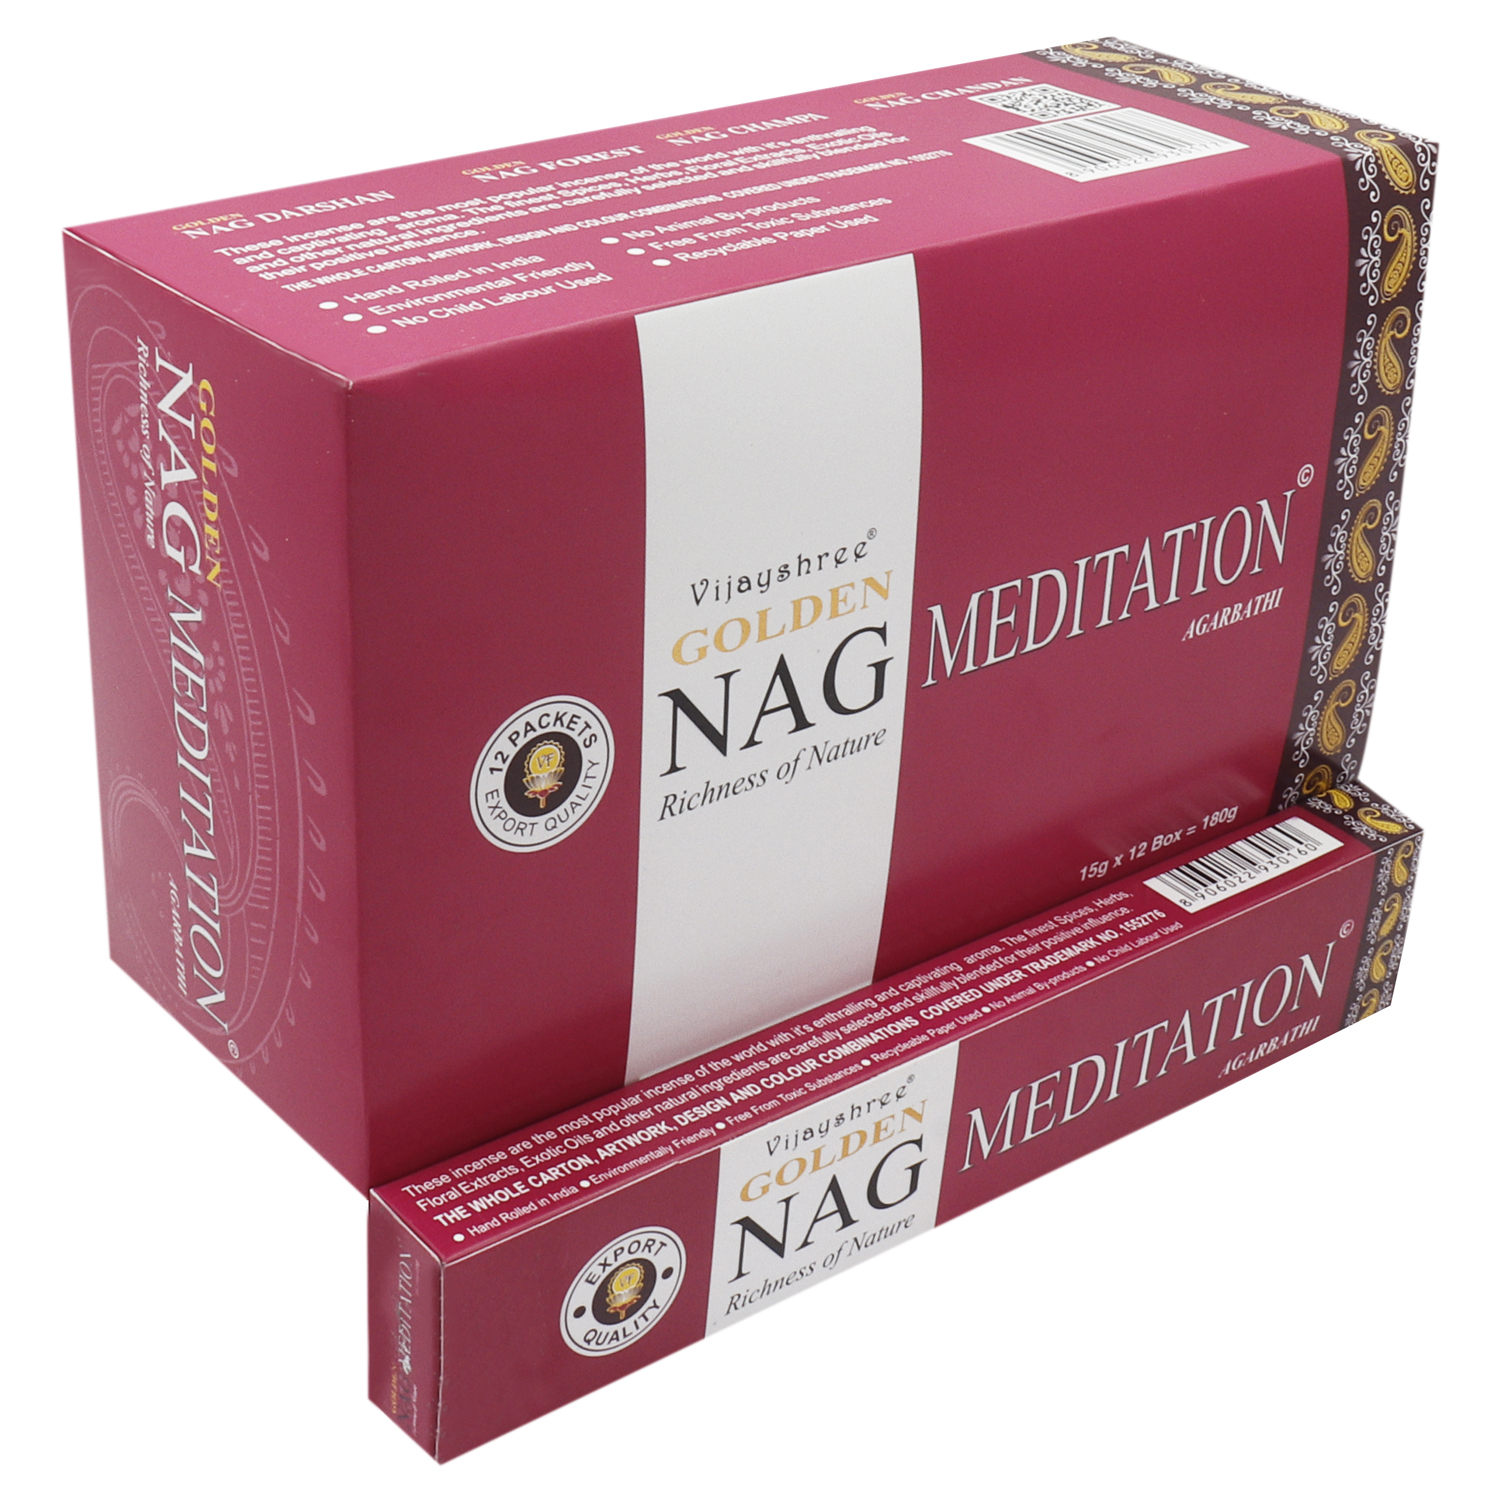 GOLDEN NAG MEDITATION 15 GM